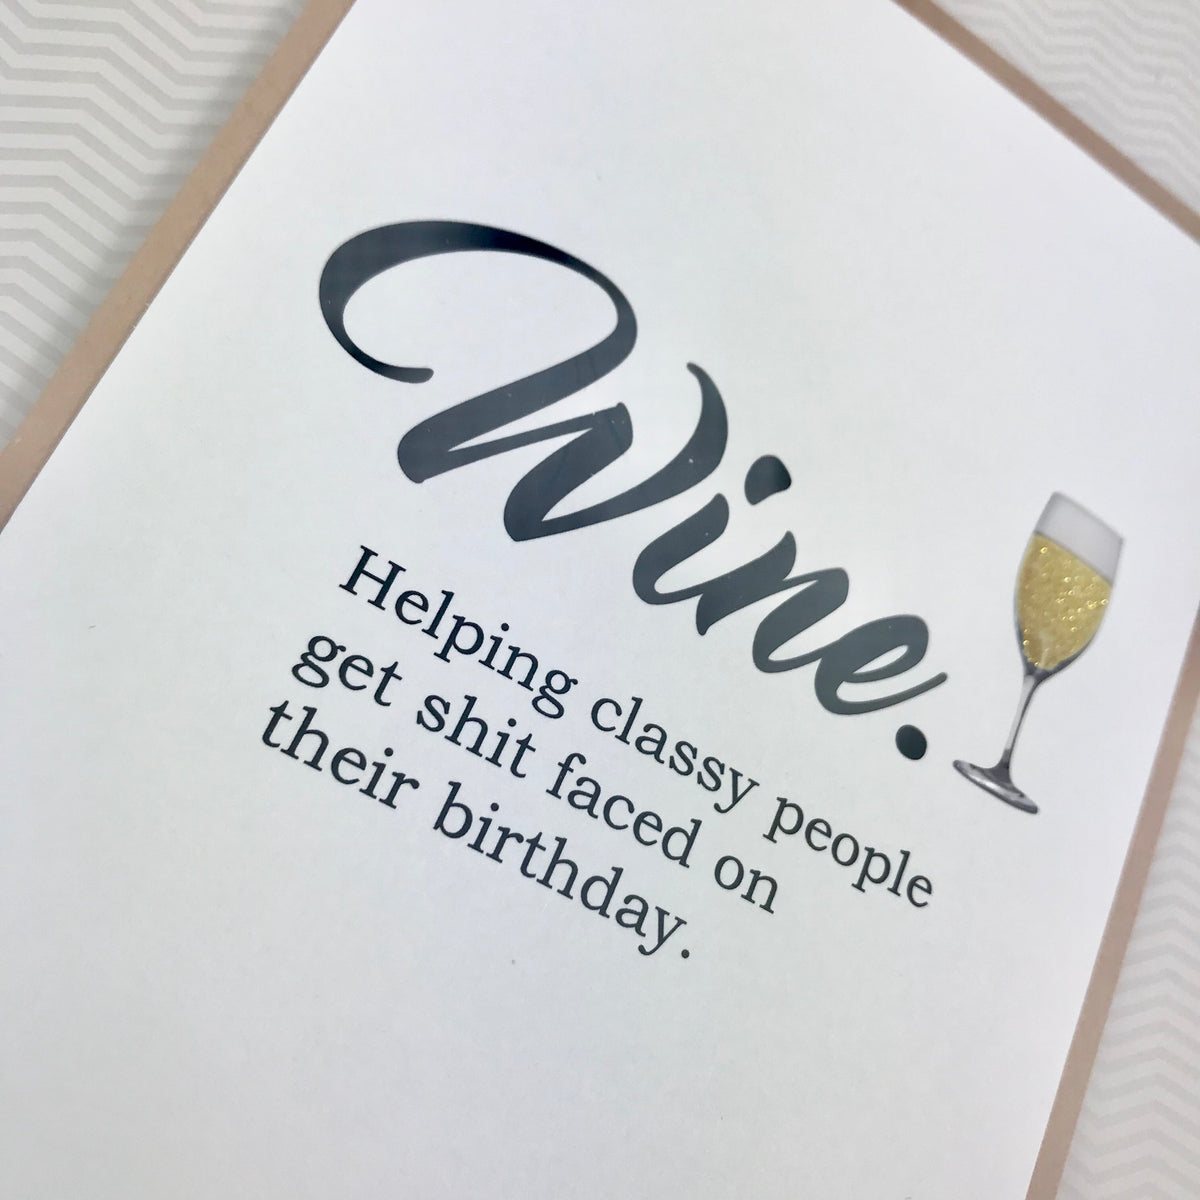 Birthday Wine Helps Classy People Shit Faced card